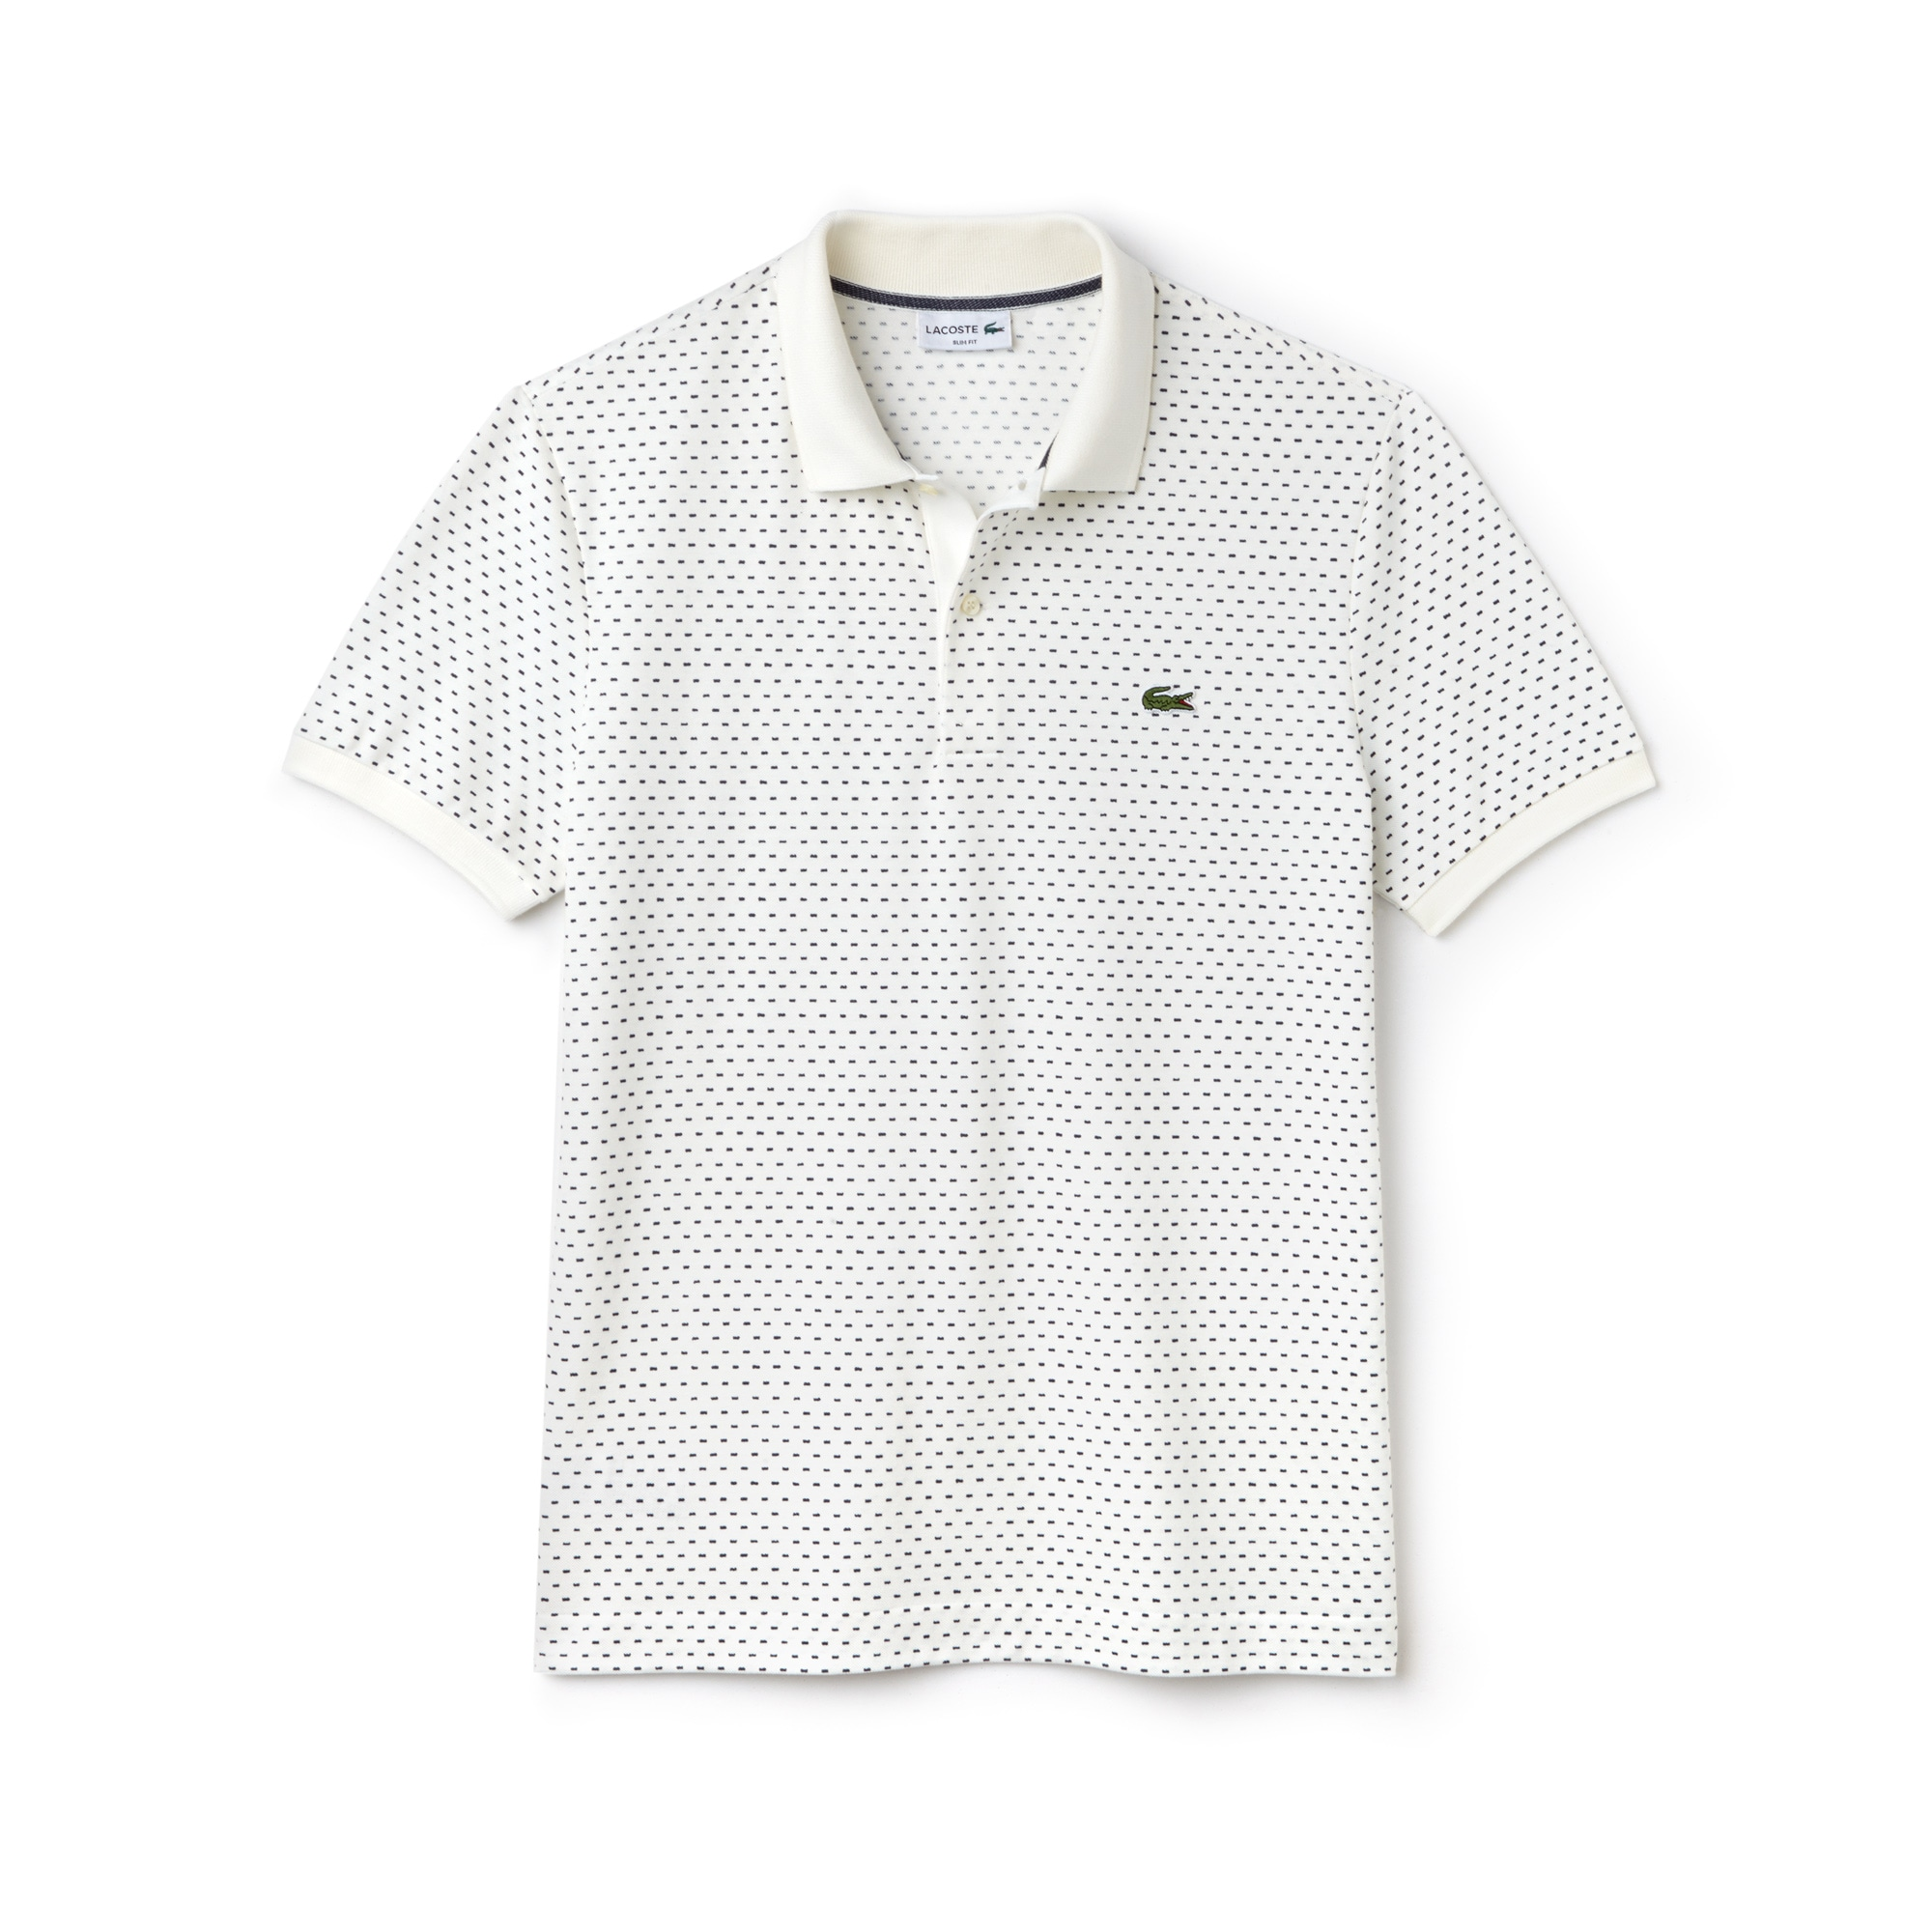 Men s Lacoste Regular Fit Striped Pima Cotton Interlock Polo.  98.00.   58.99. (4 colors). 40% off 2995dc3be7